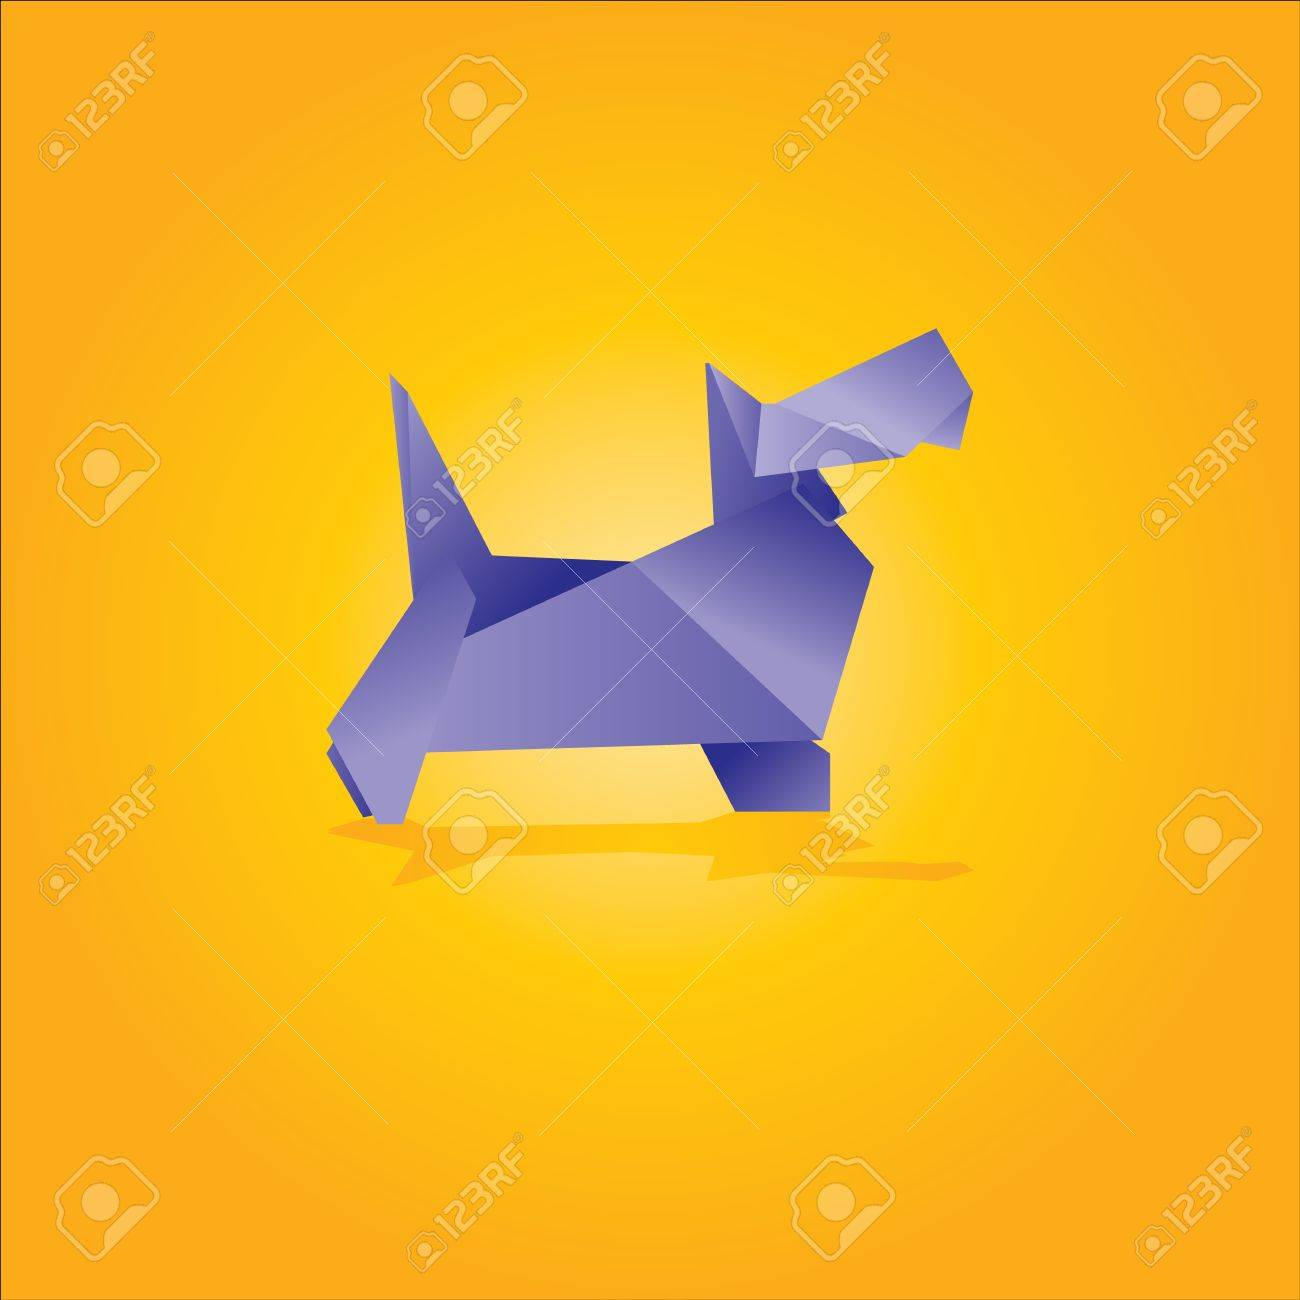 Origami dog face how to origami - Origami Dog Vector Illustration Of An Origami Dog